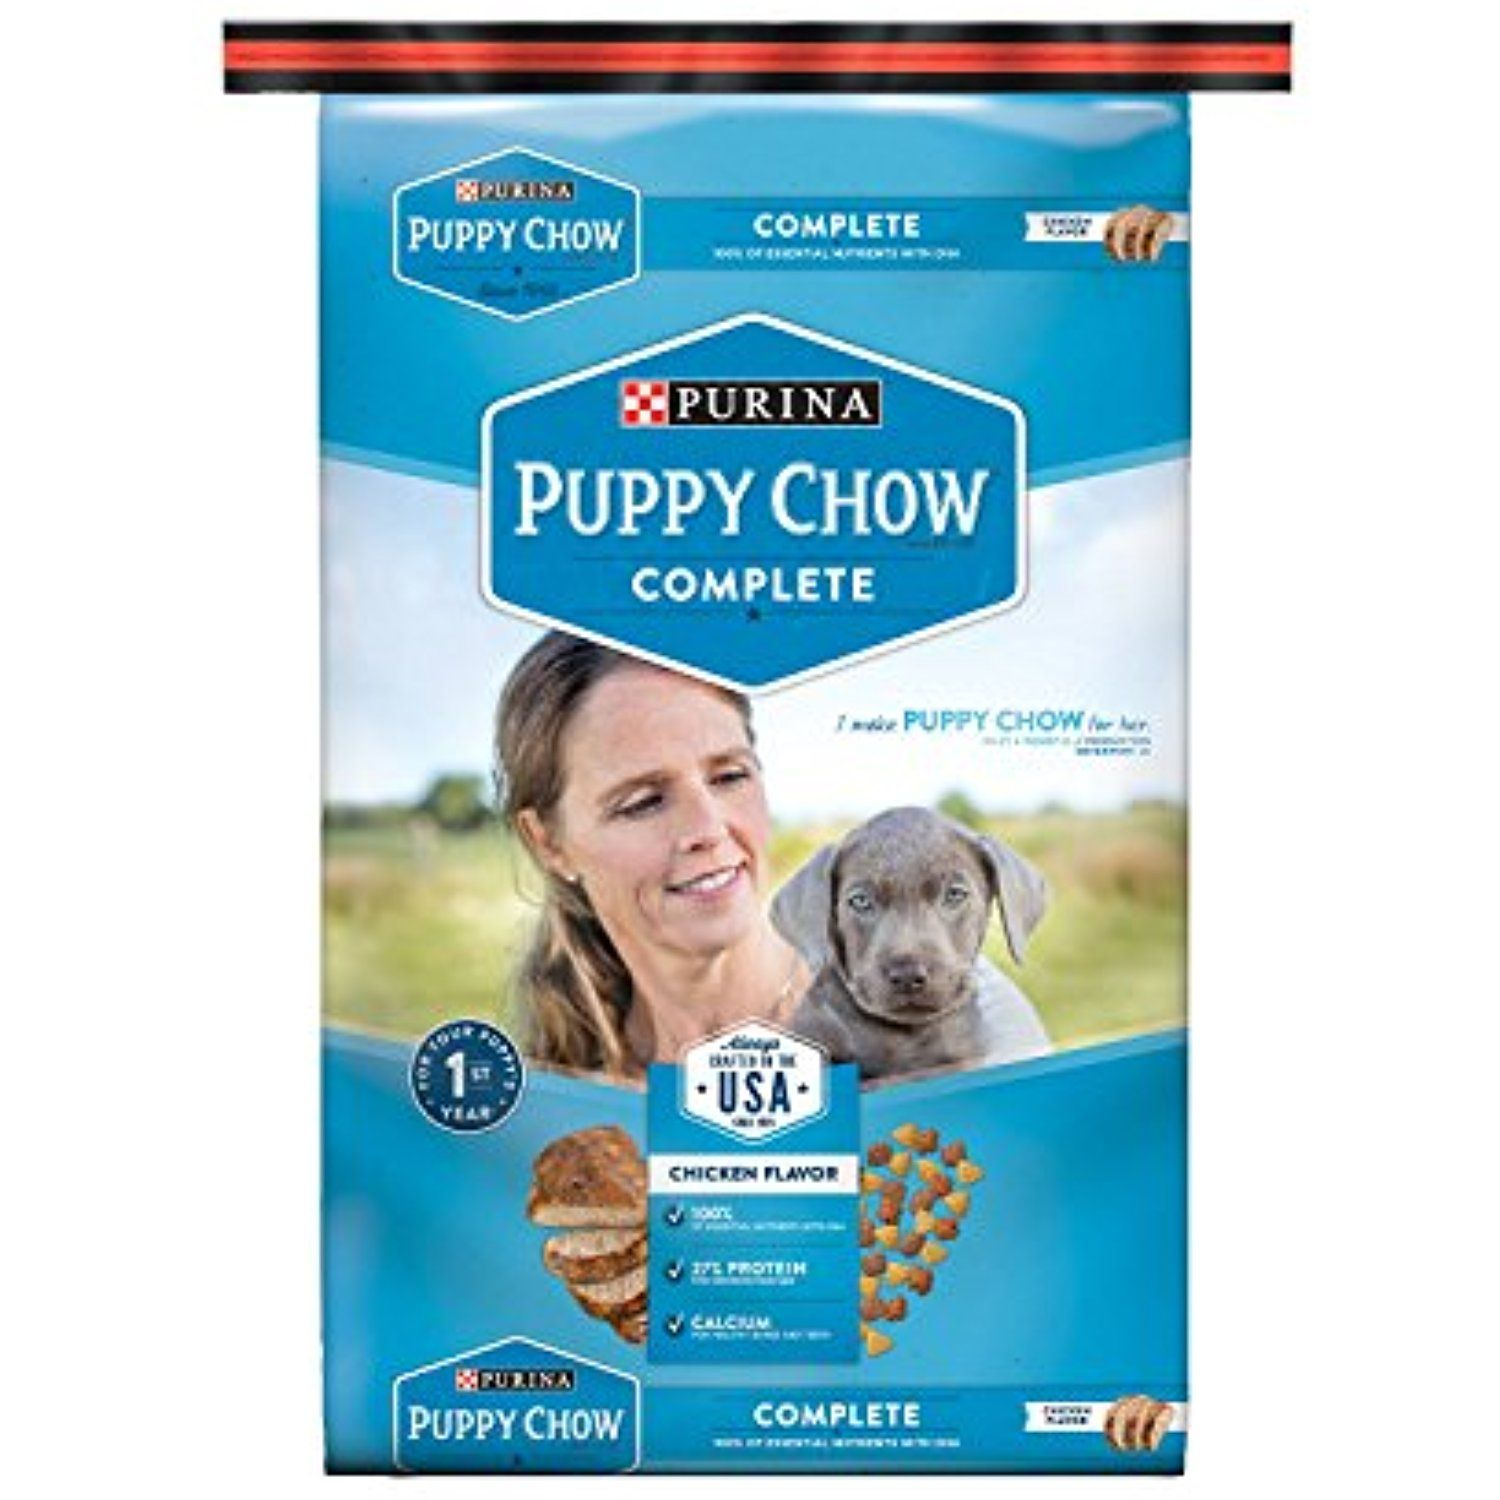 Purina Puppy Chow Complete Puppy Dry Dog Food 16 5 Lb Bag Of 1 You Can See This Great Product This Is An Af Purina Puppy Chow Purina Puppy Puppy Chow